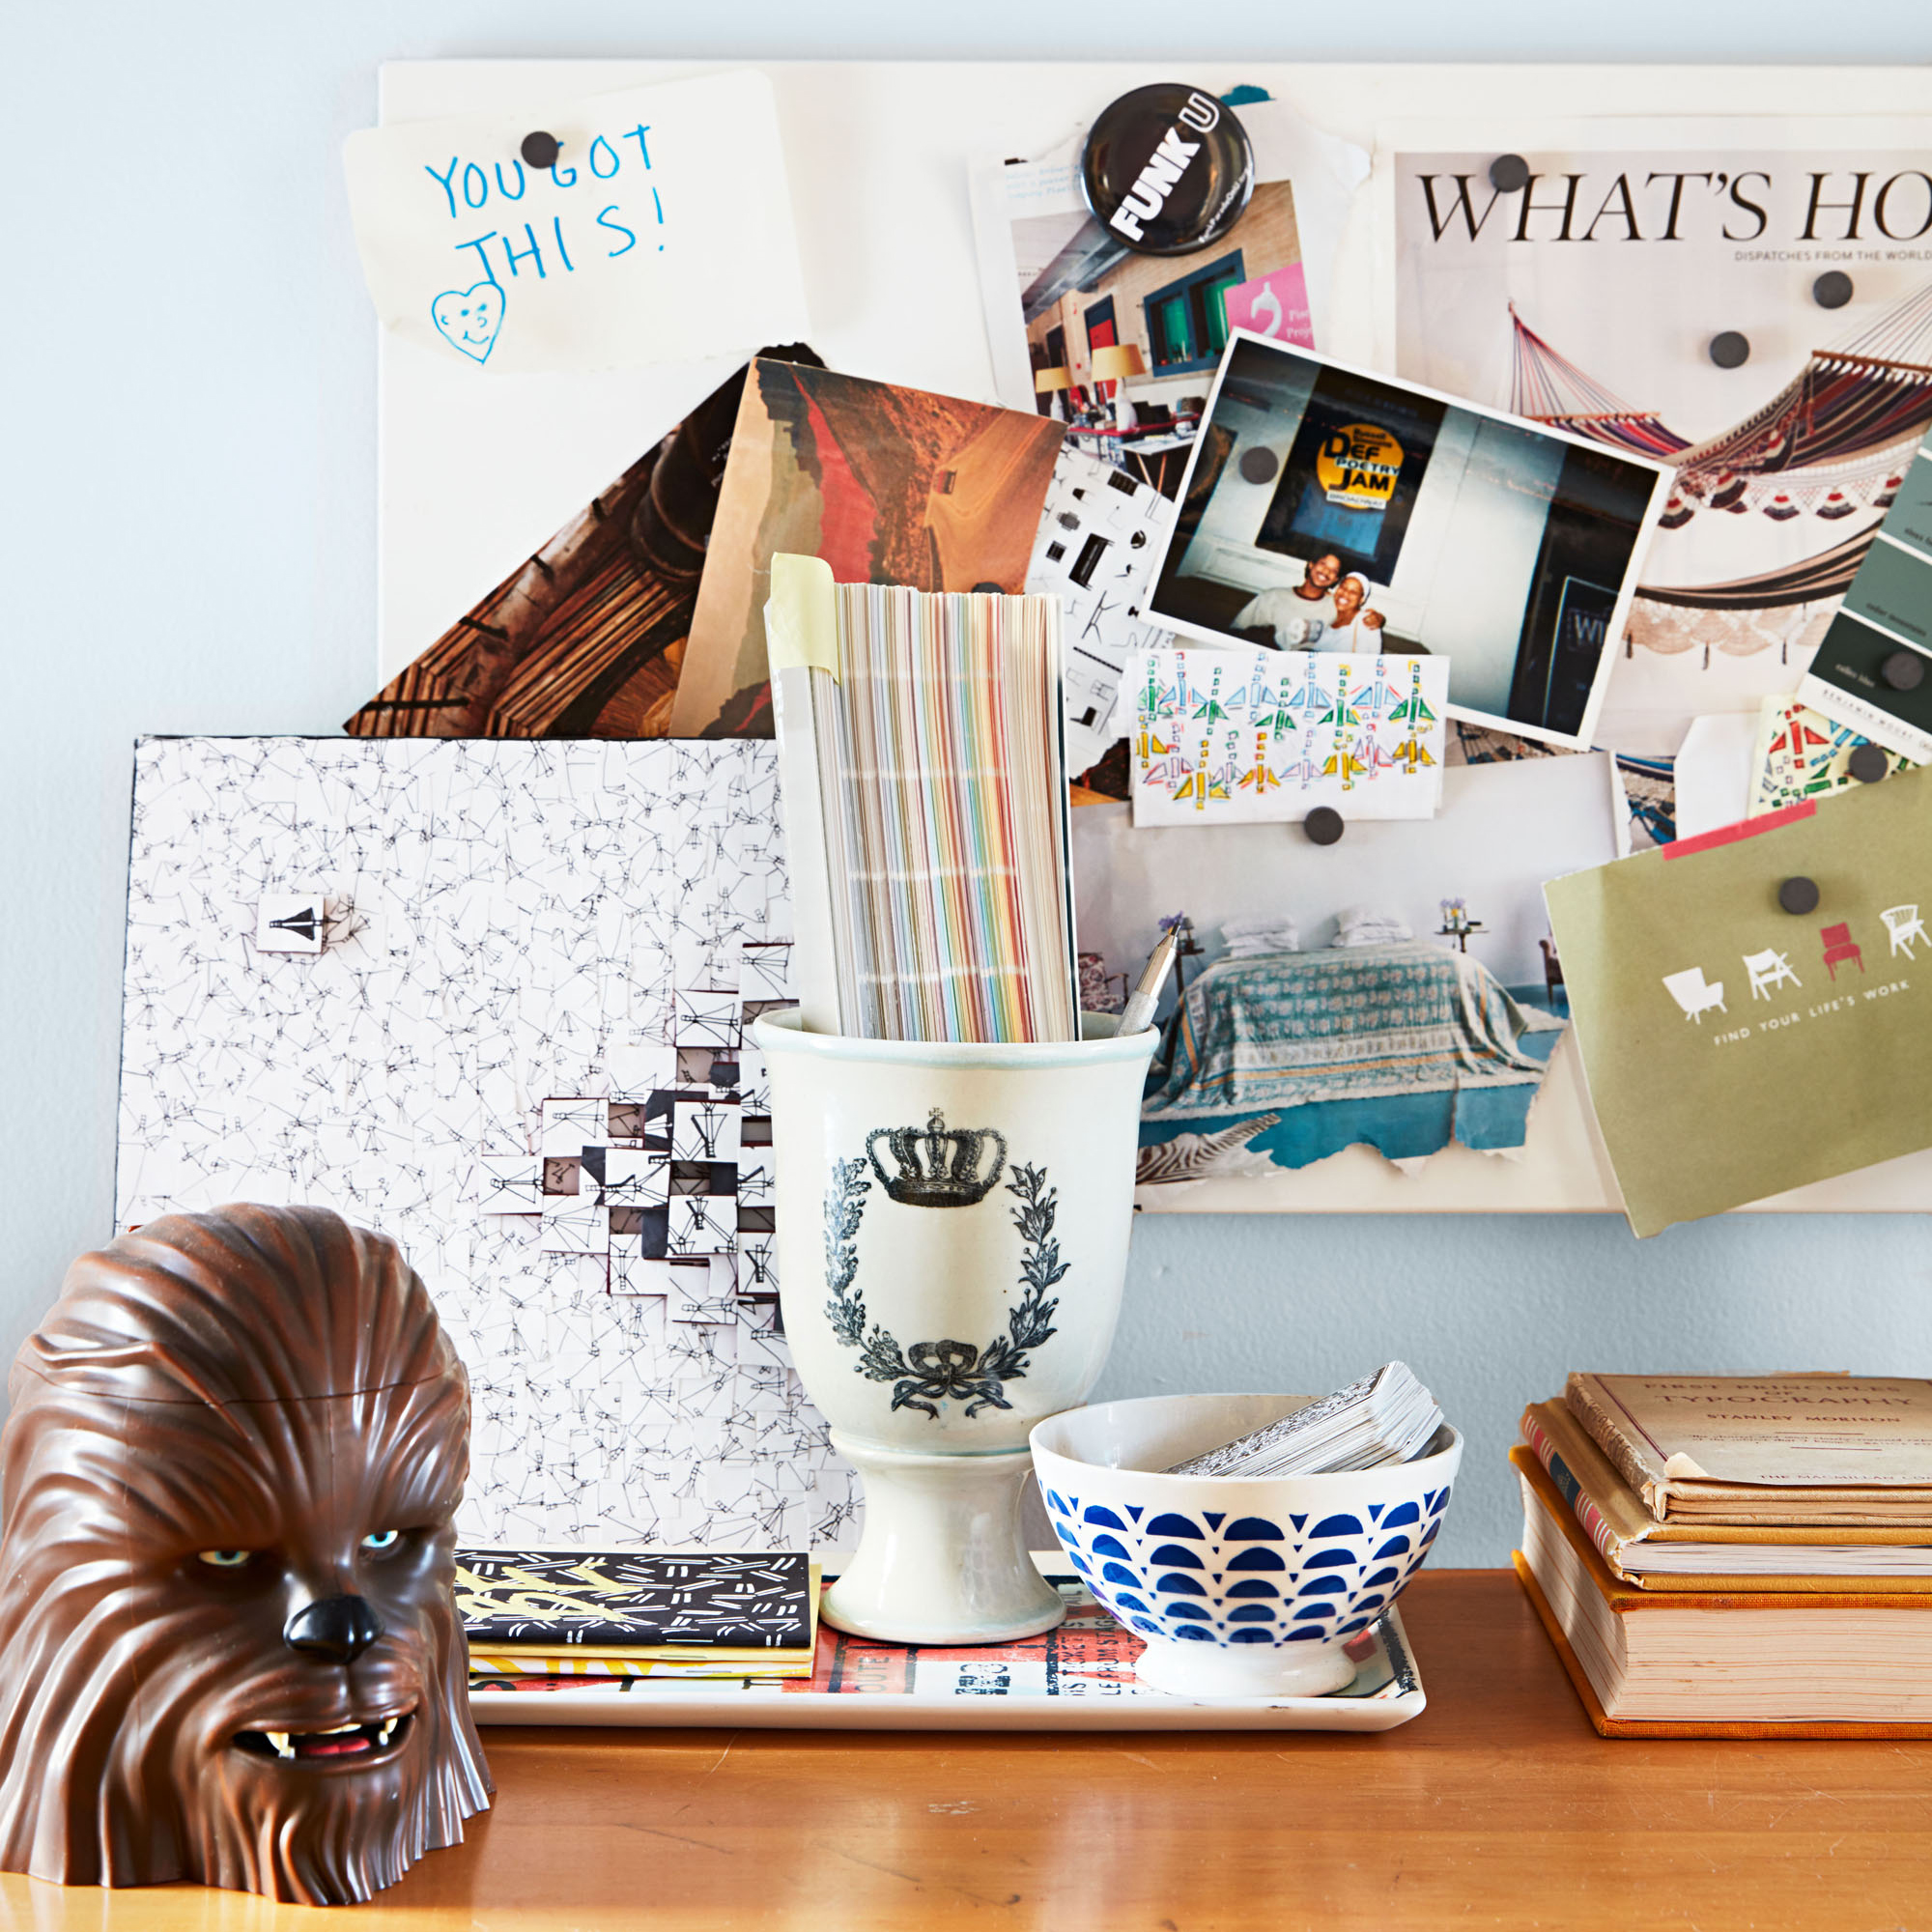 Office Desk with Photos and Various Decor